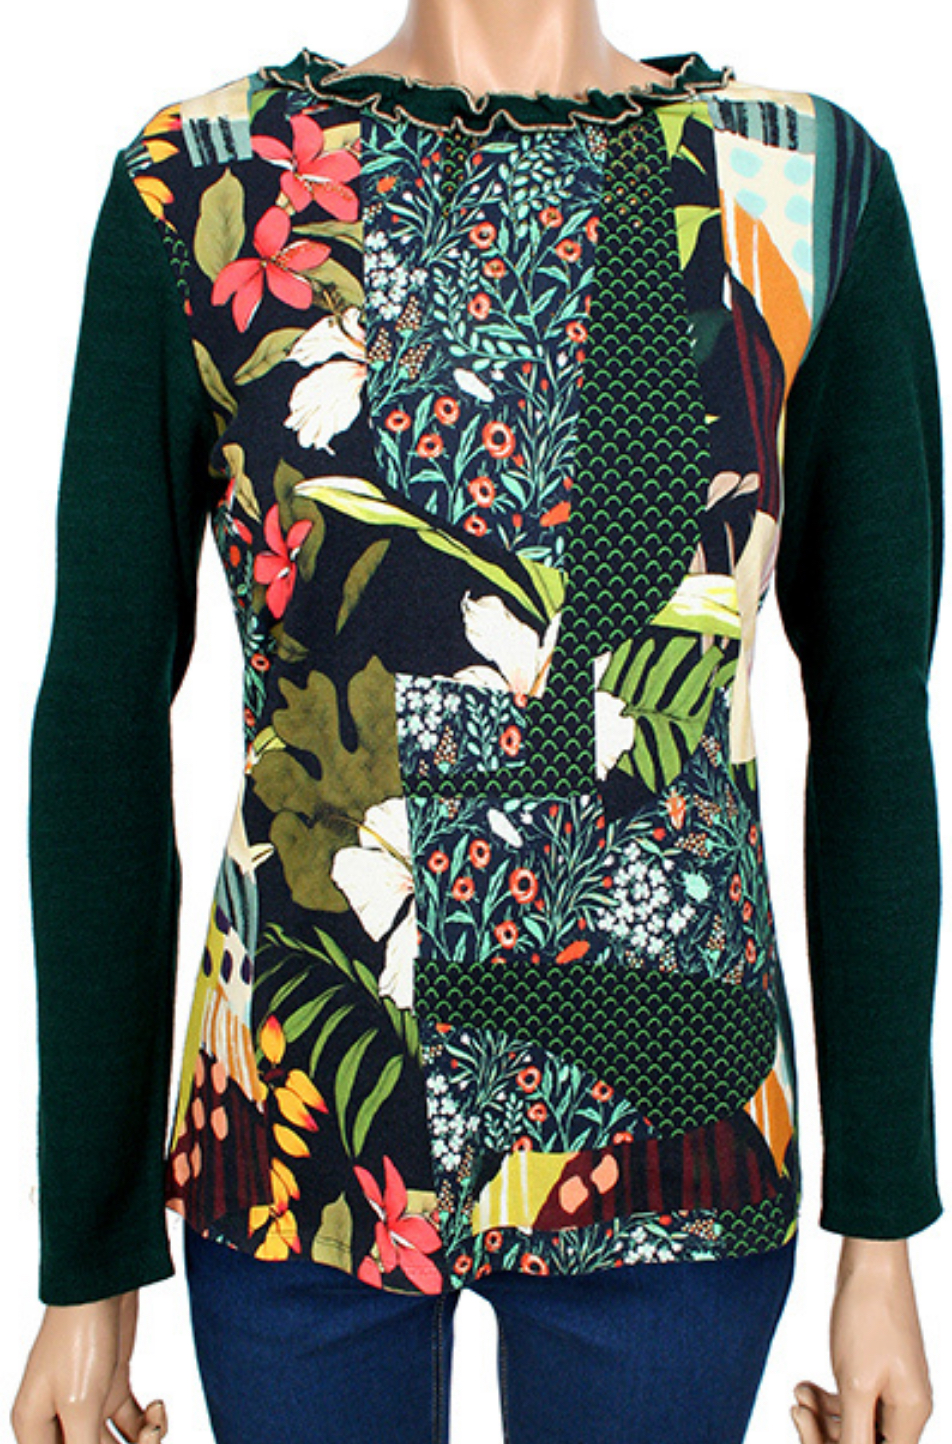 Kalisson Long Sleeved Top (Green)